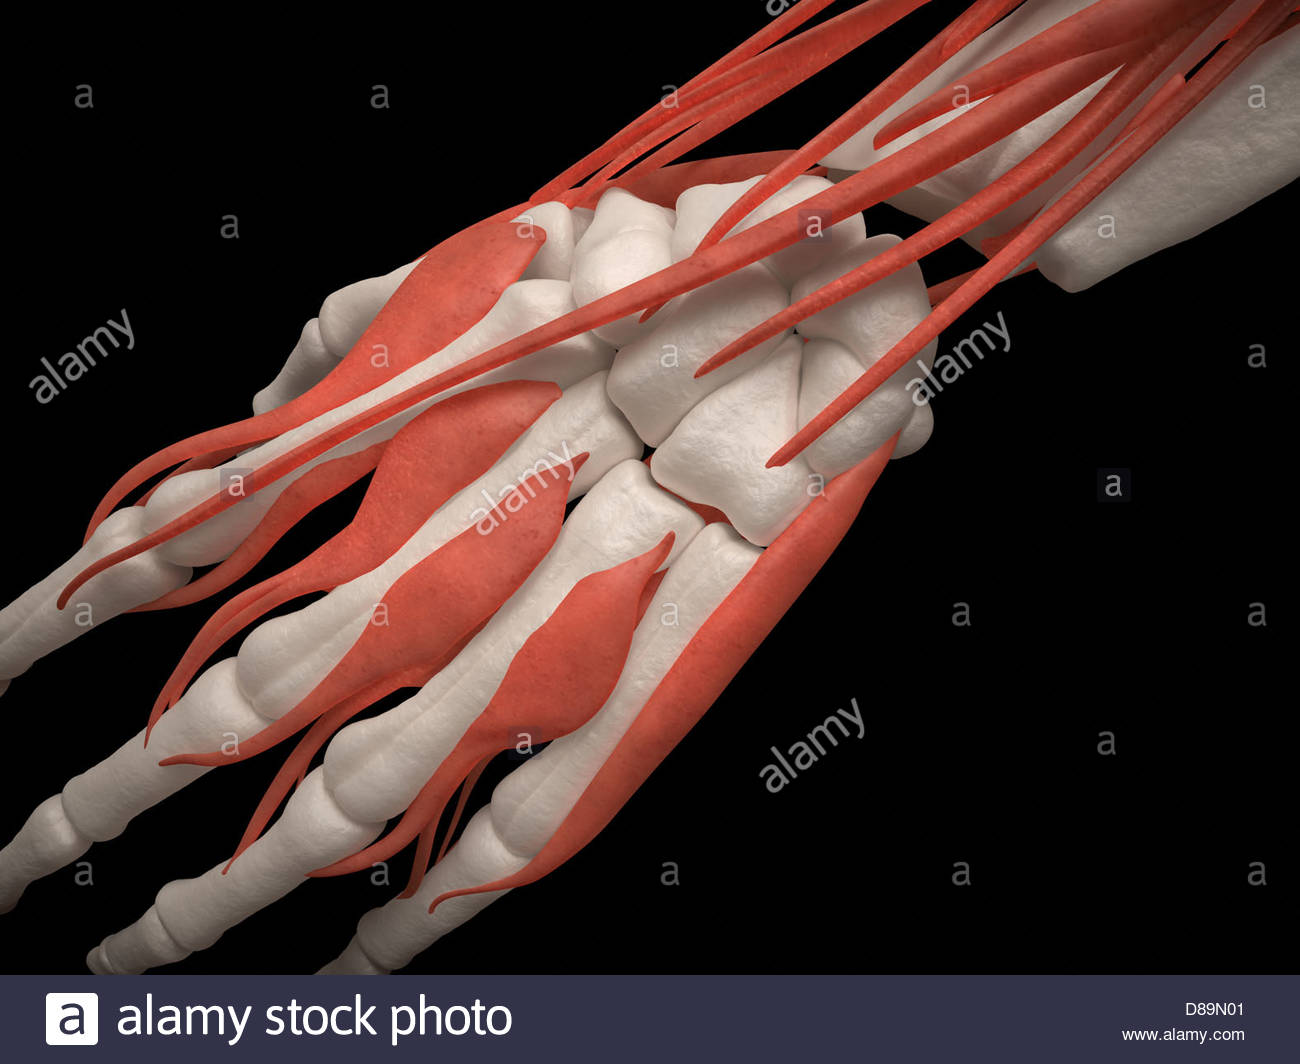 Digital medical illustration: Top view of human hand (skeleton with muscles). - Stock Image